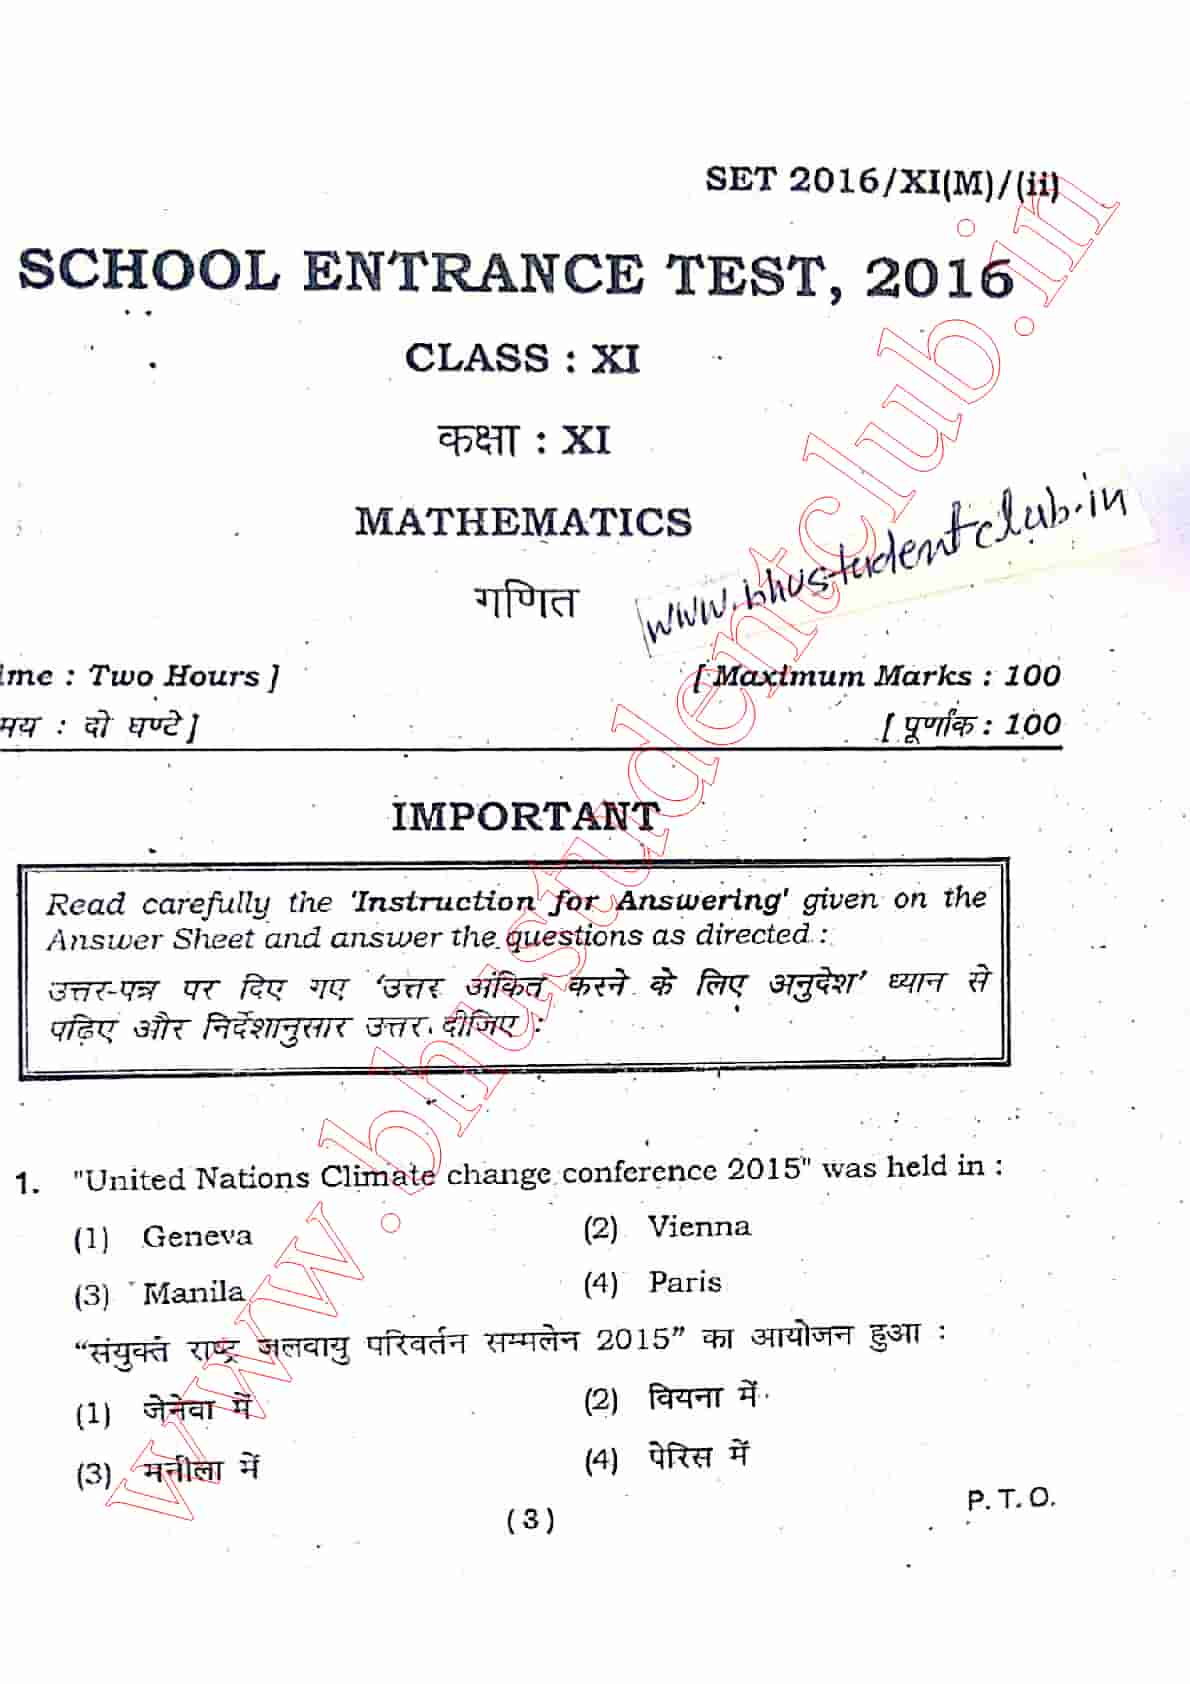 chs 11th mathematics 2016 set old question paper bhu bhu student club